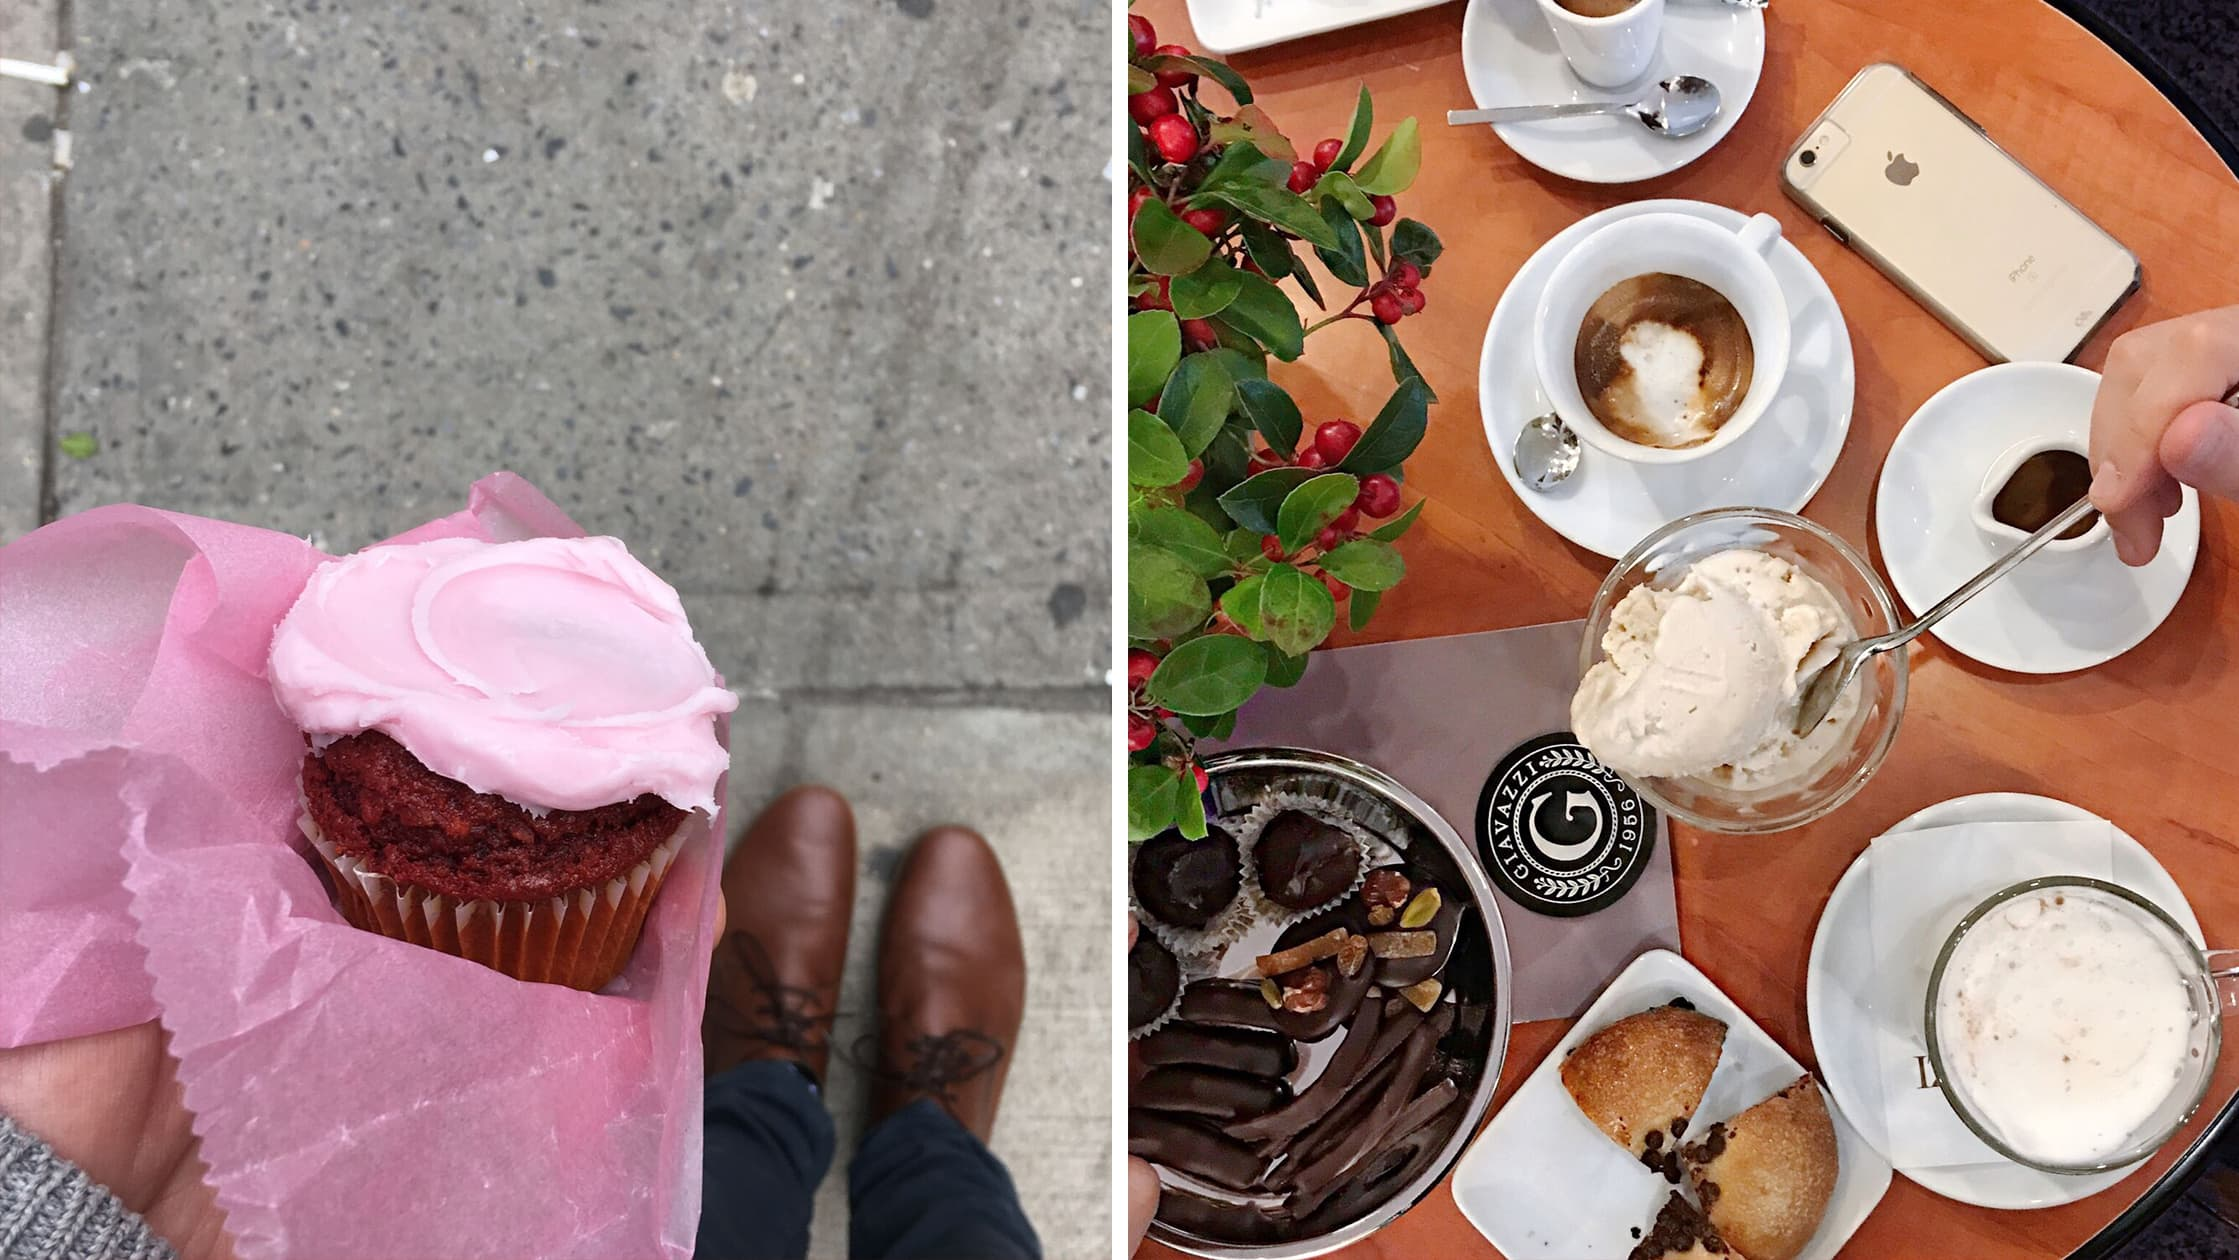 Left: Vegan Cupcake & Shoes in Berlin, Germany | Right: Vegan Dessert in Rivolta d'Adda, Italy